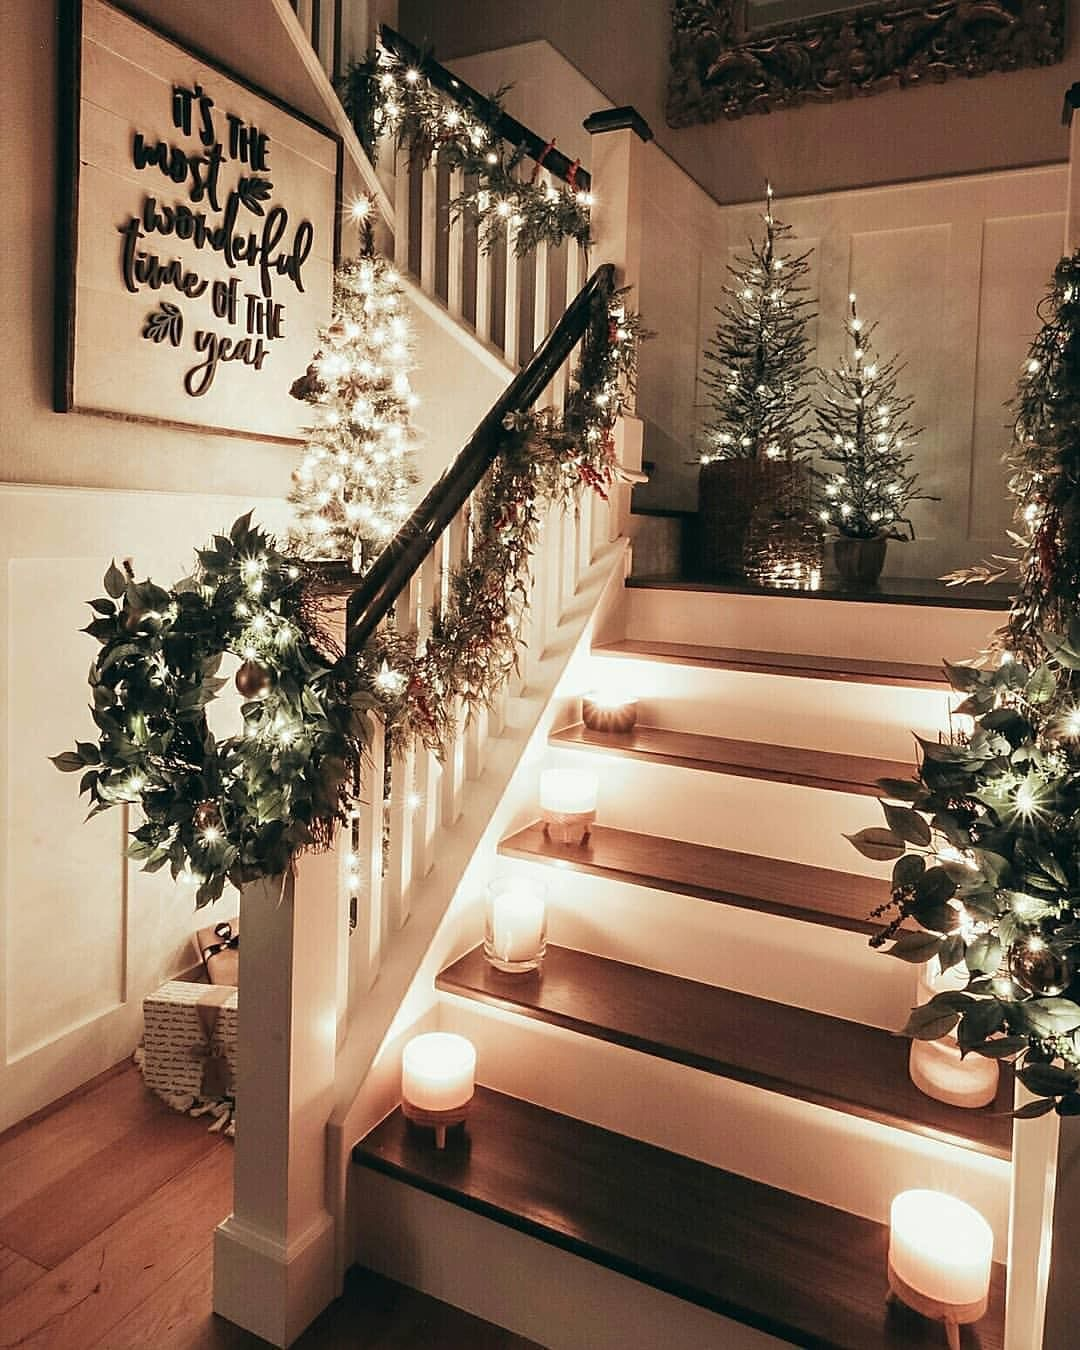 Vintagefarmhouseloving On Instagram Who Is Already Missing Christmas This House Is Just Beautifu Christmas Staircase Holiday Decor Christmas Decorations